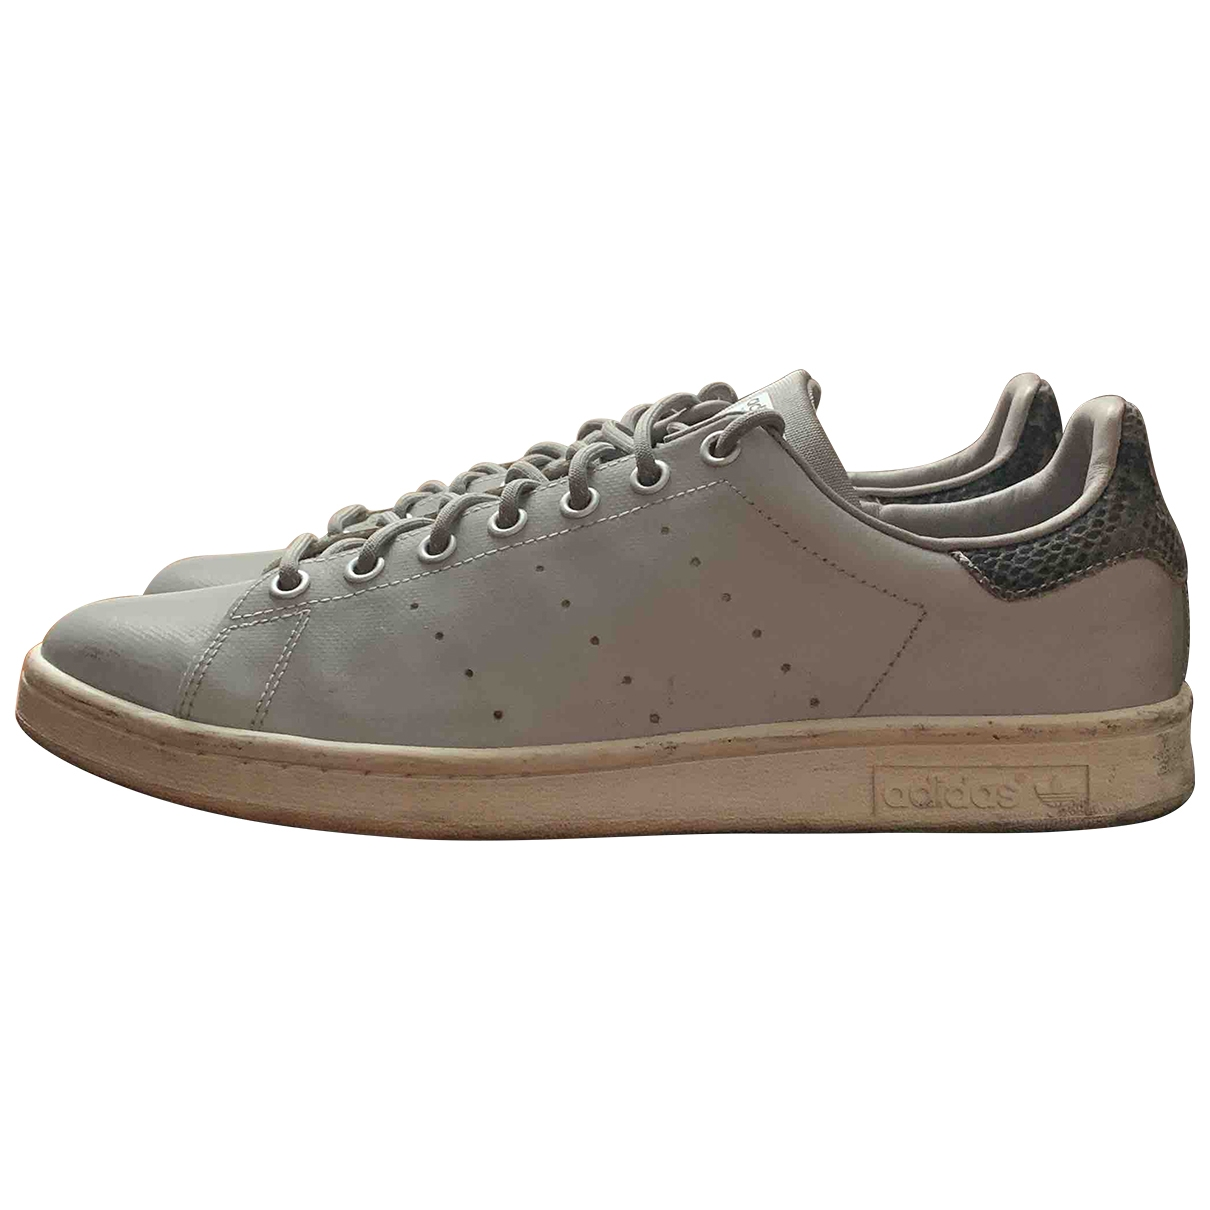 Adidas Stan Smith Grey Leather Trainers for Men 10.5 US